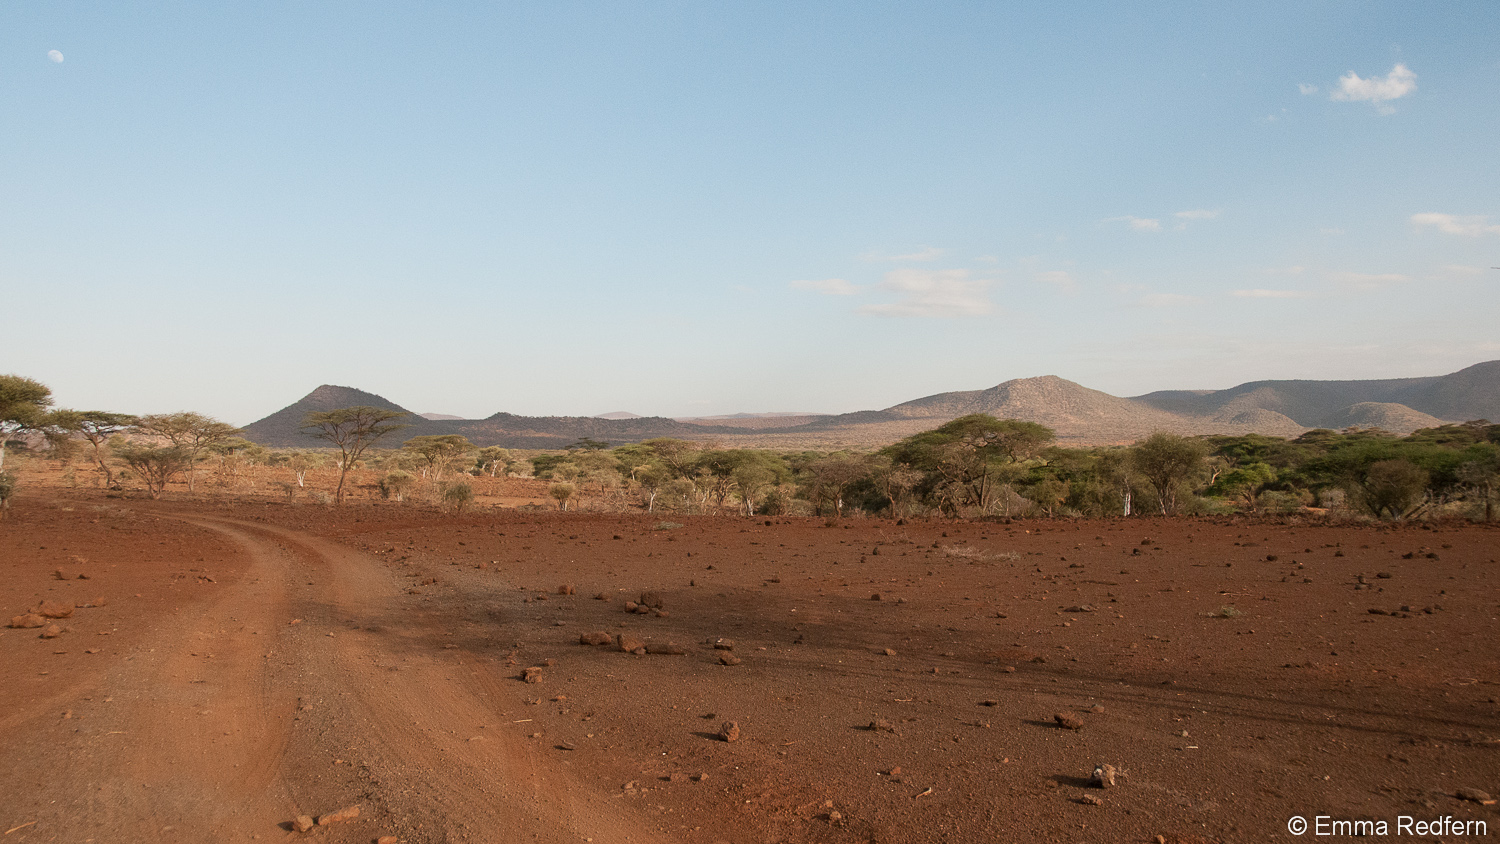 A barren land, over grazed and crippled by drought